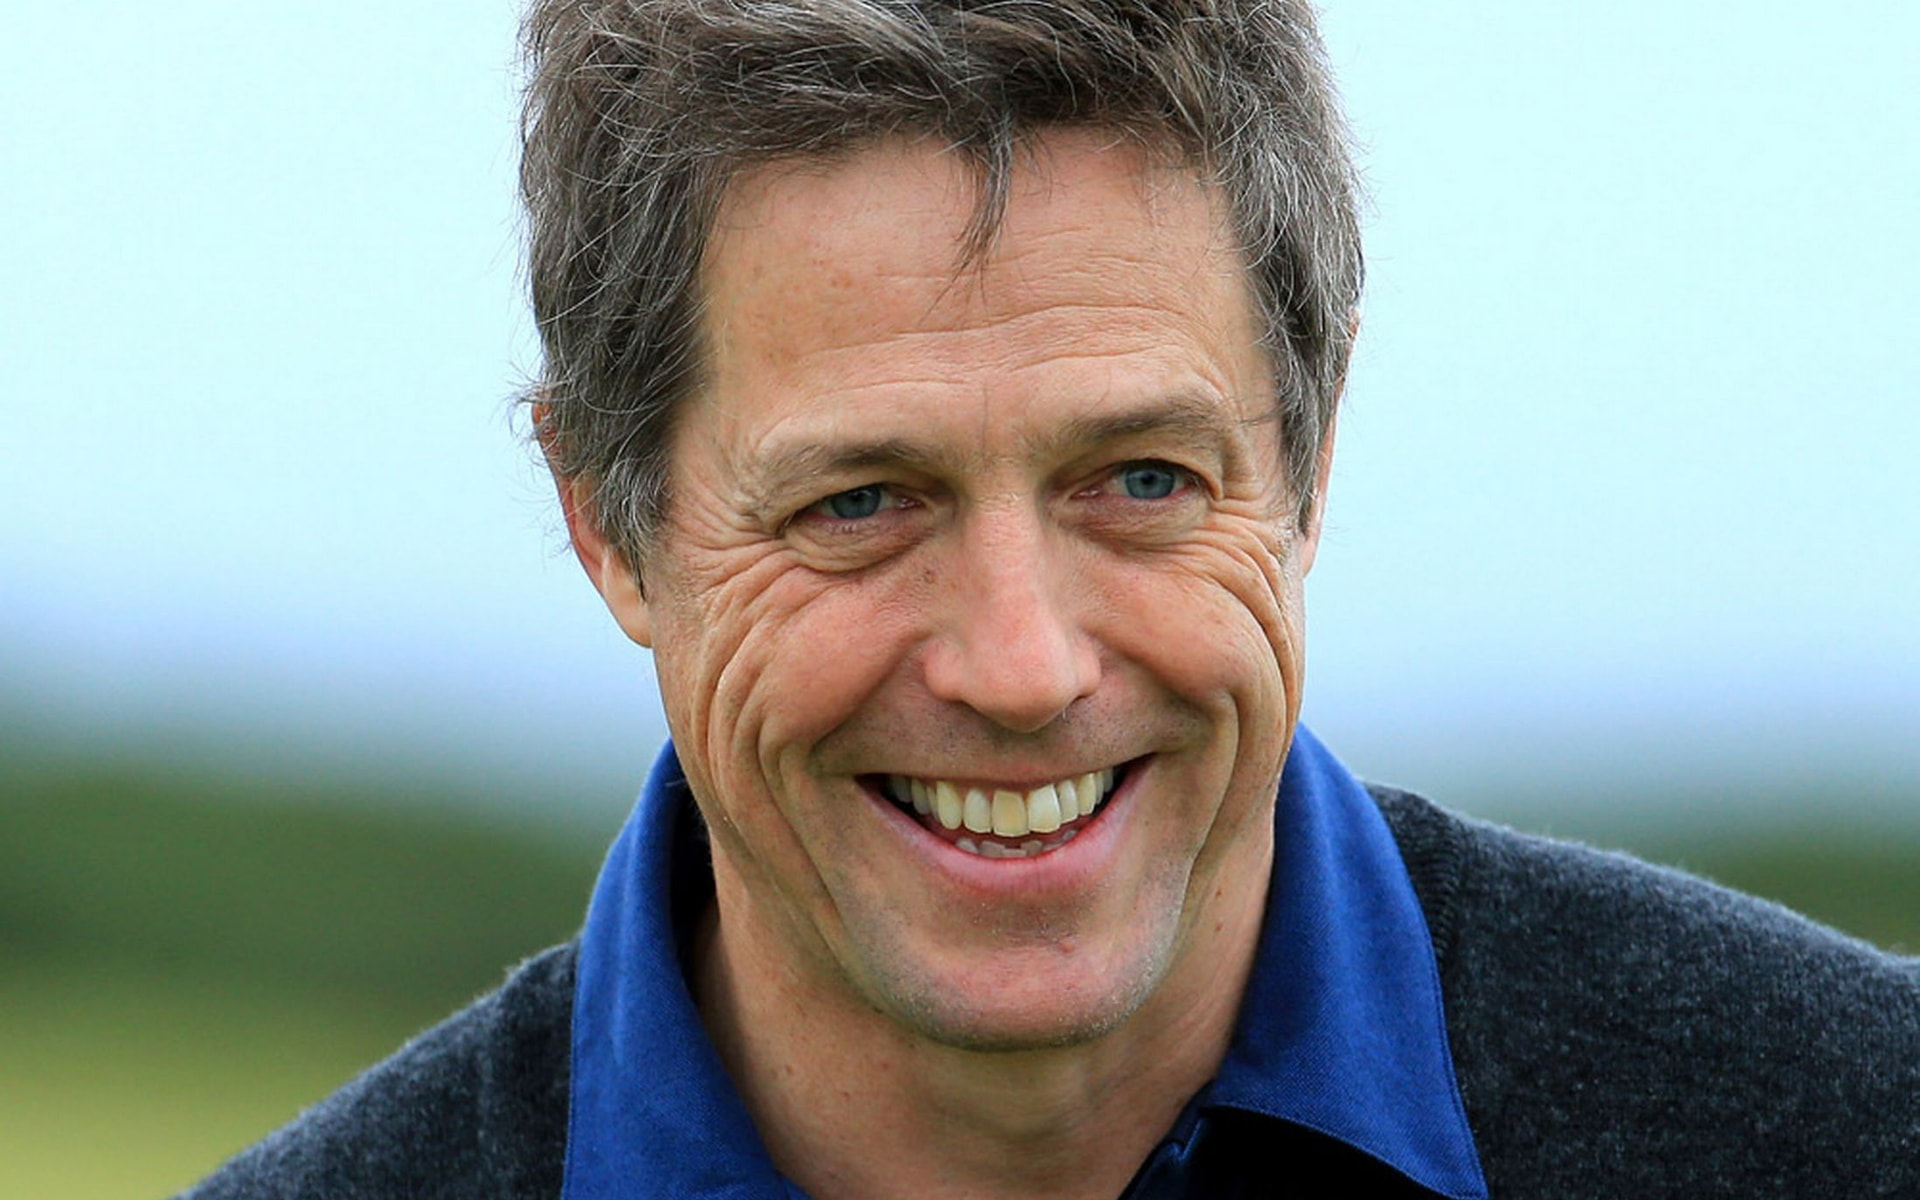 Hugh Grant Widescreen